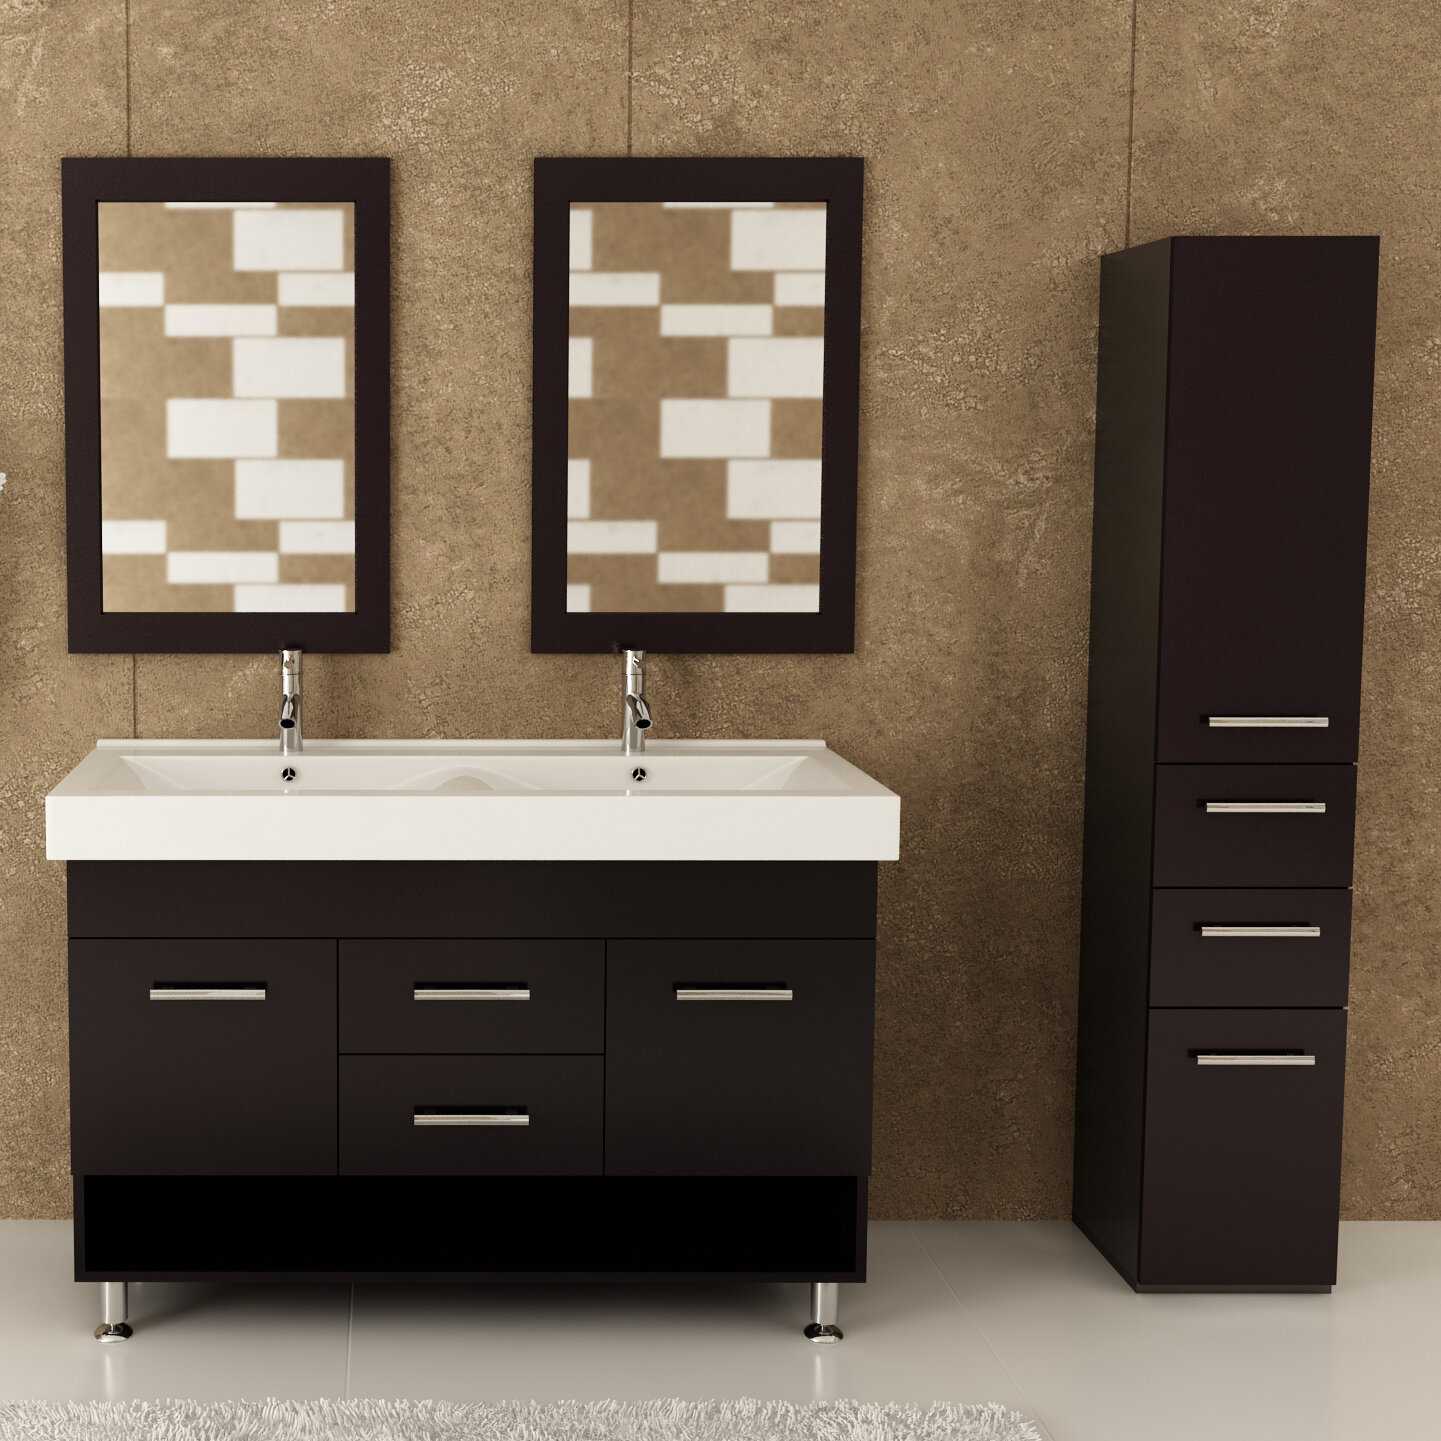 sinks vessel vanities bathroom double of design inspiration cabinets at extraordinary and about home torrington amusing vanity sink glamorous ideas